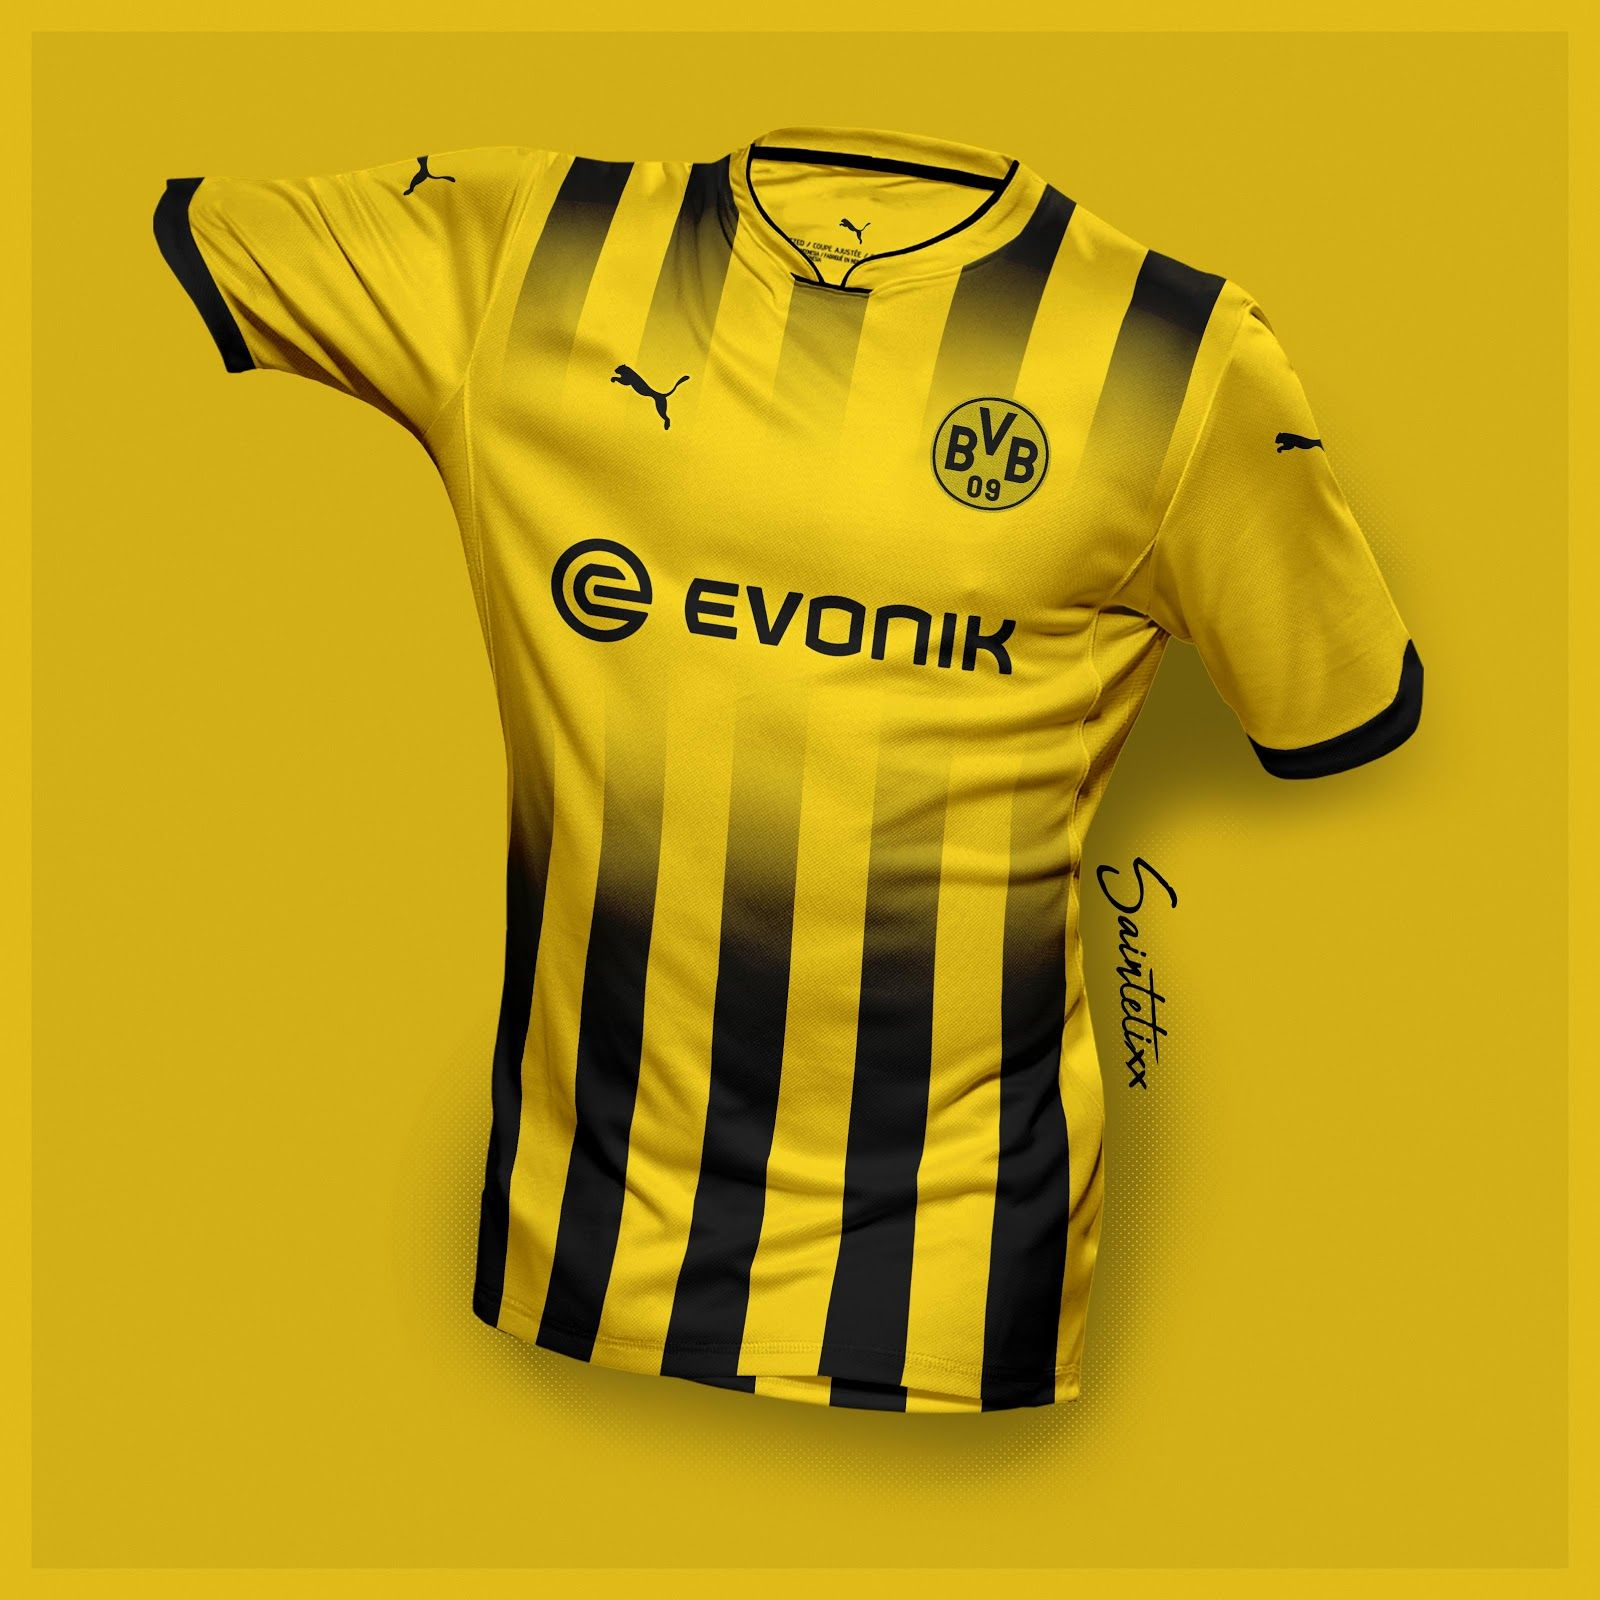 e23439c5a79 Incredible Puma Borussia Dortmund 19-20 Home, Away & Third Concept Kits by  Saintetixx - Footy Headlines